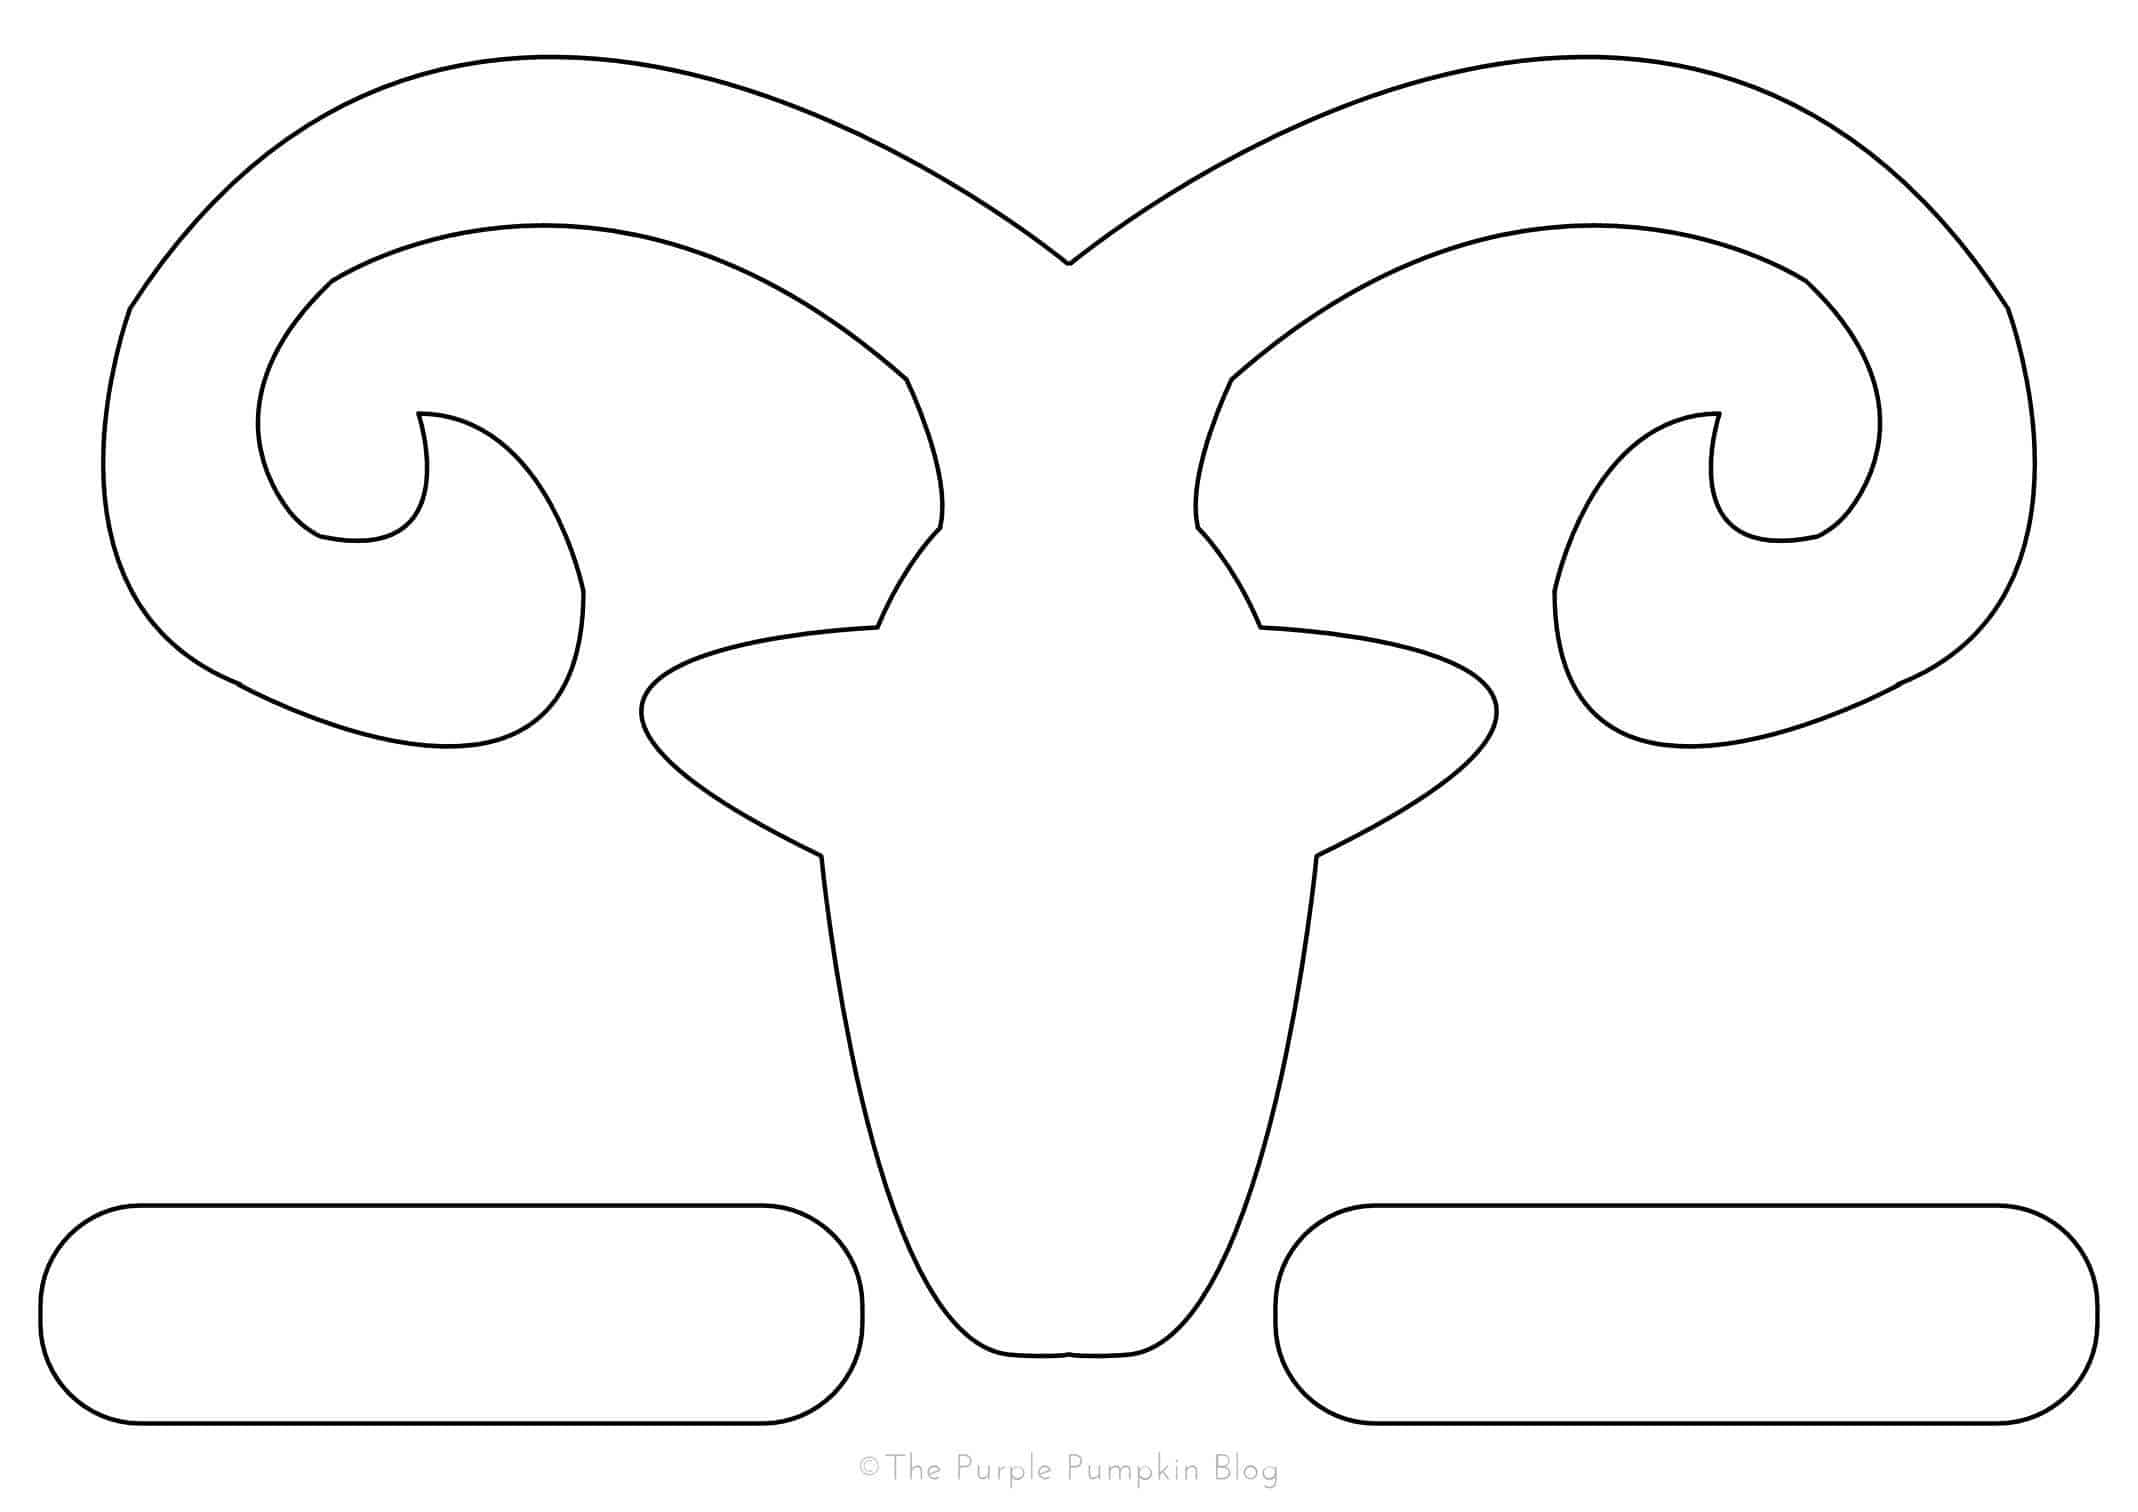 lamb cut out template - paper plate craft for kids chinese new year goat sheep